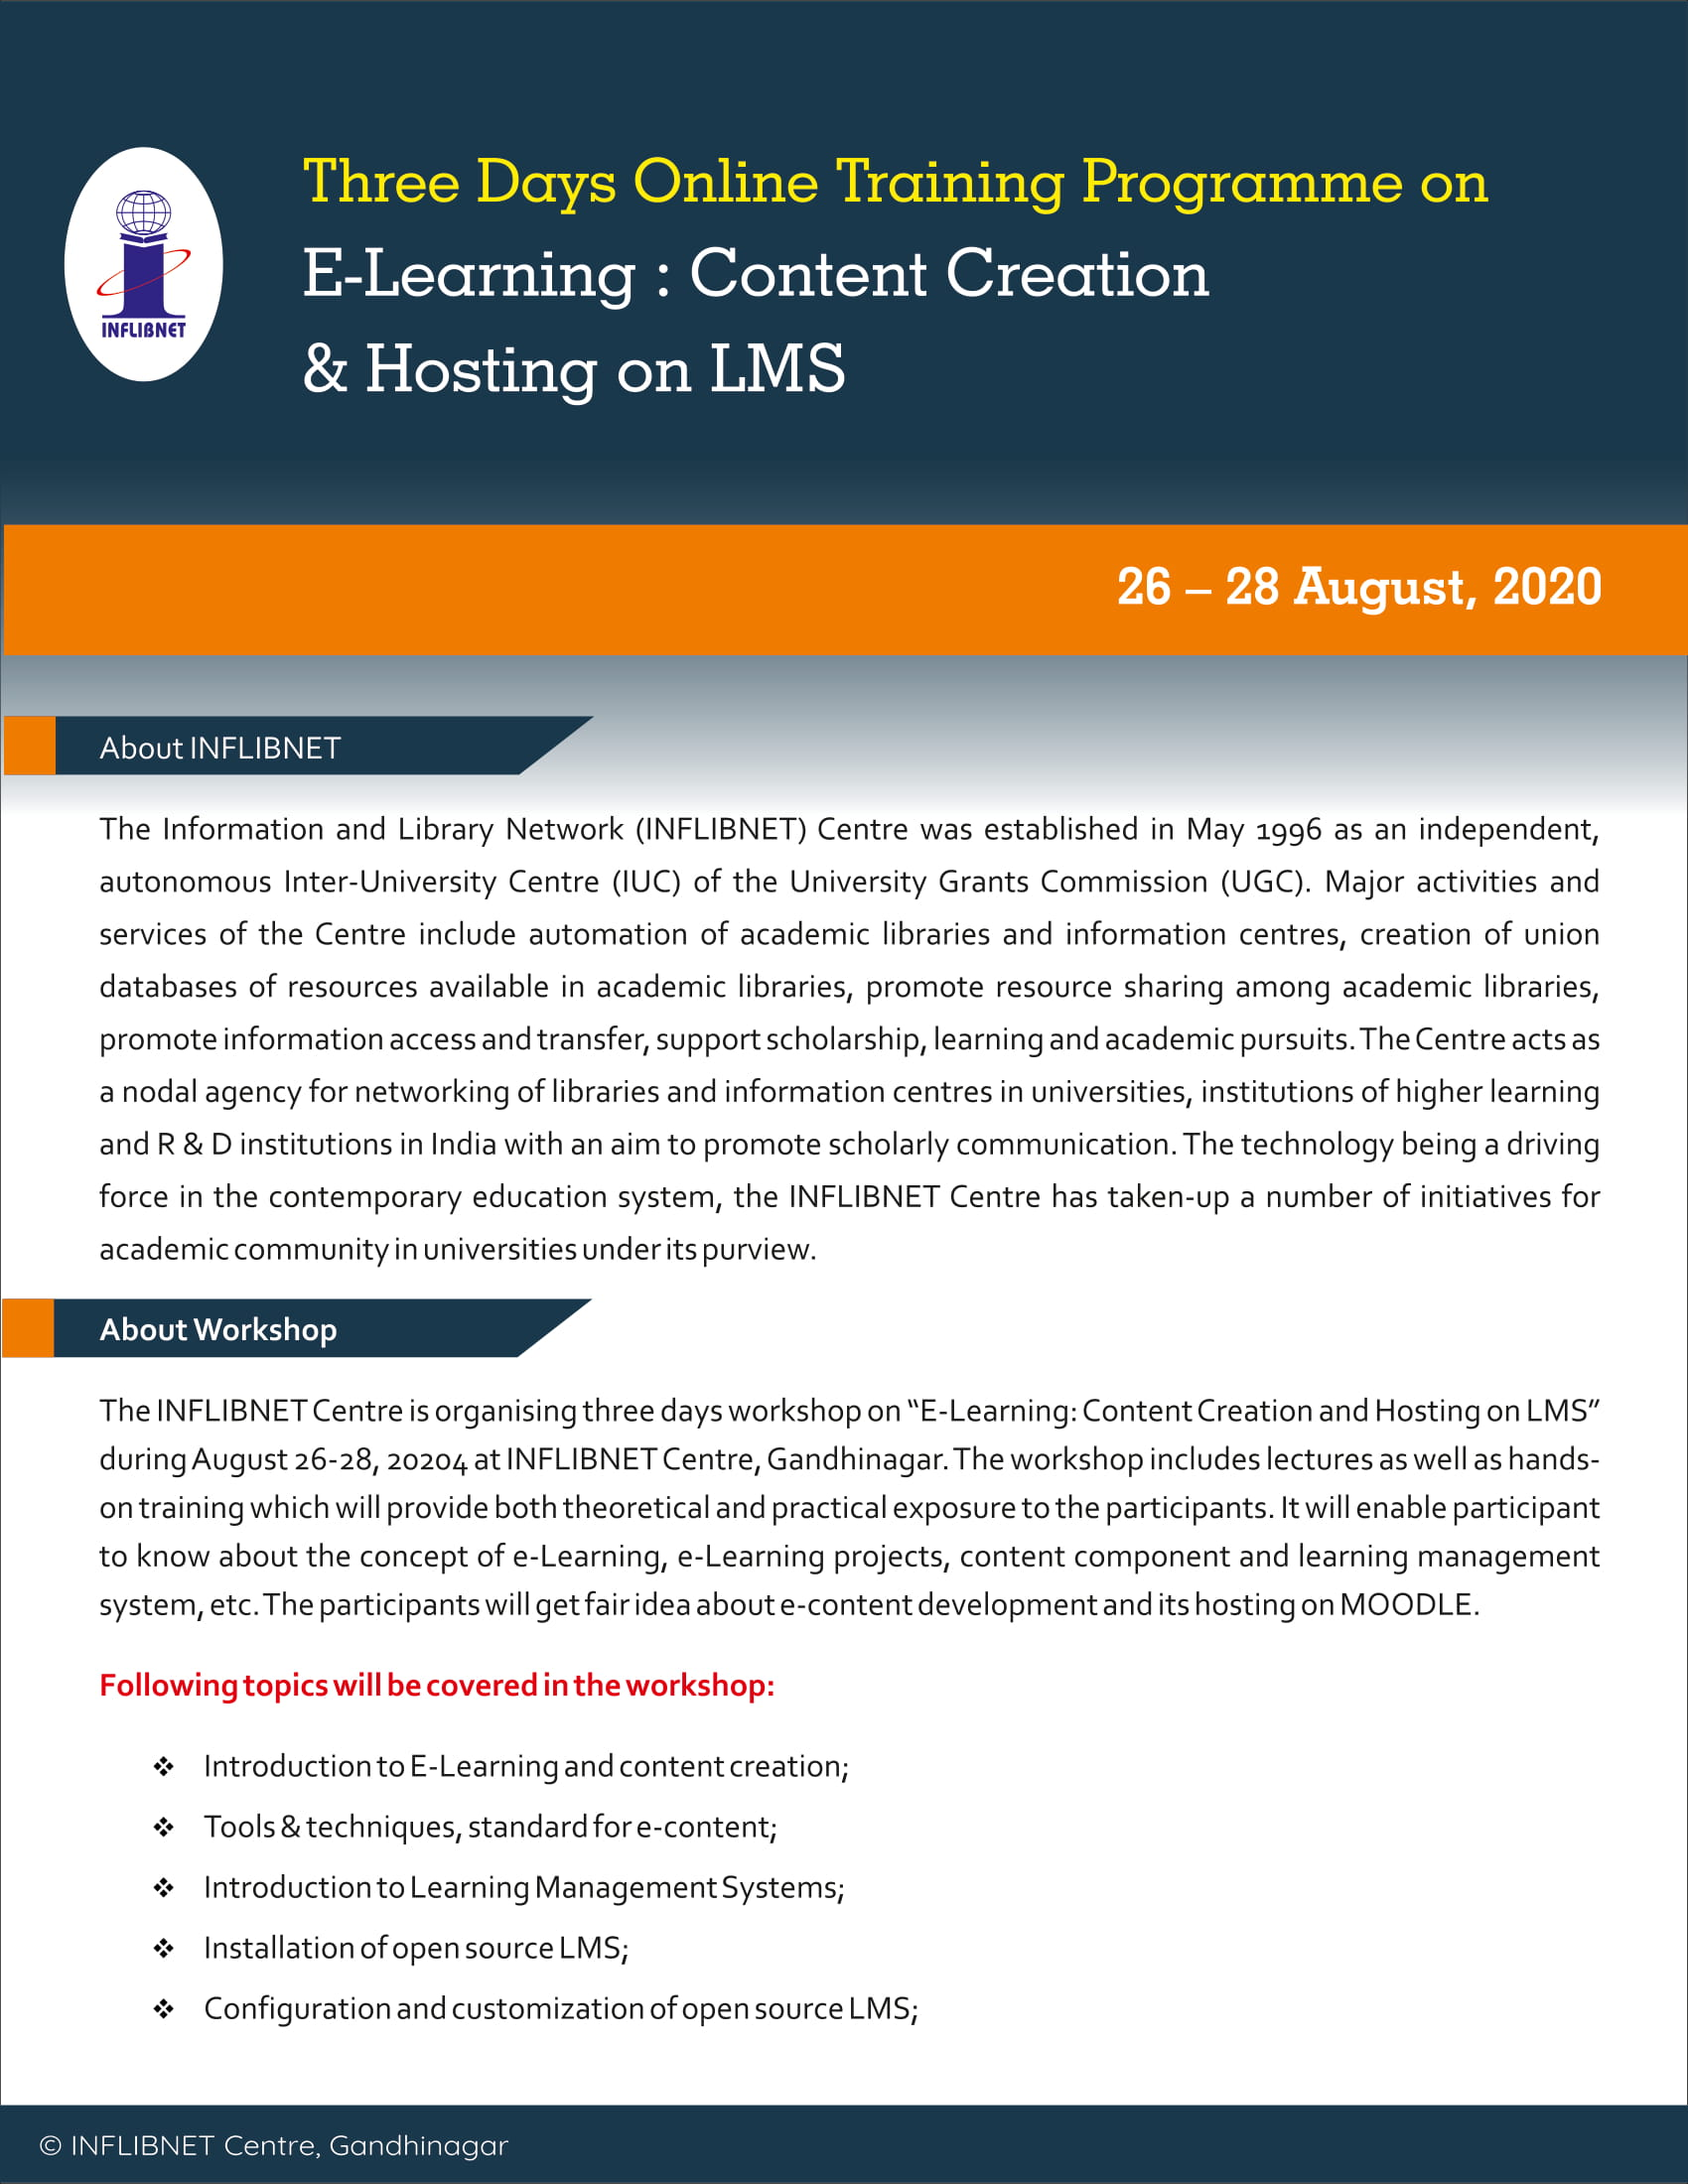 eLearning_ContentCreation_August2020-1